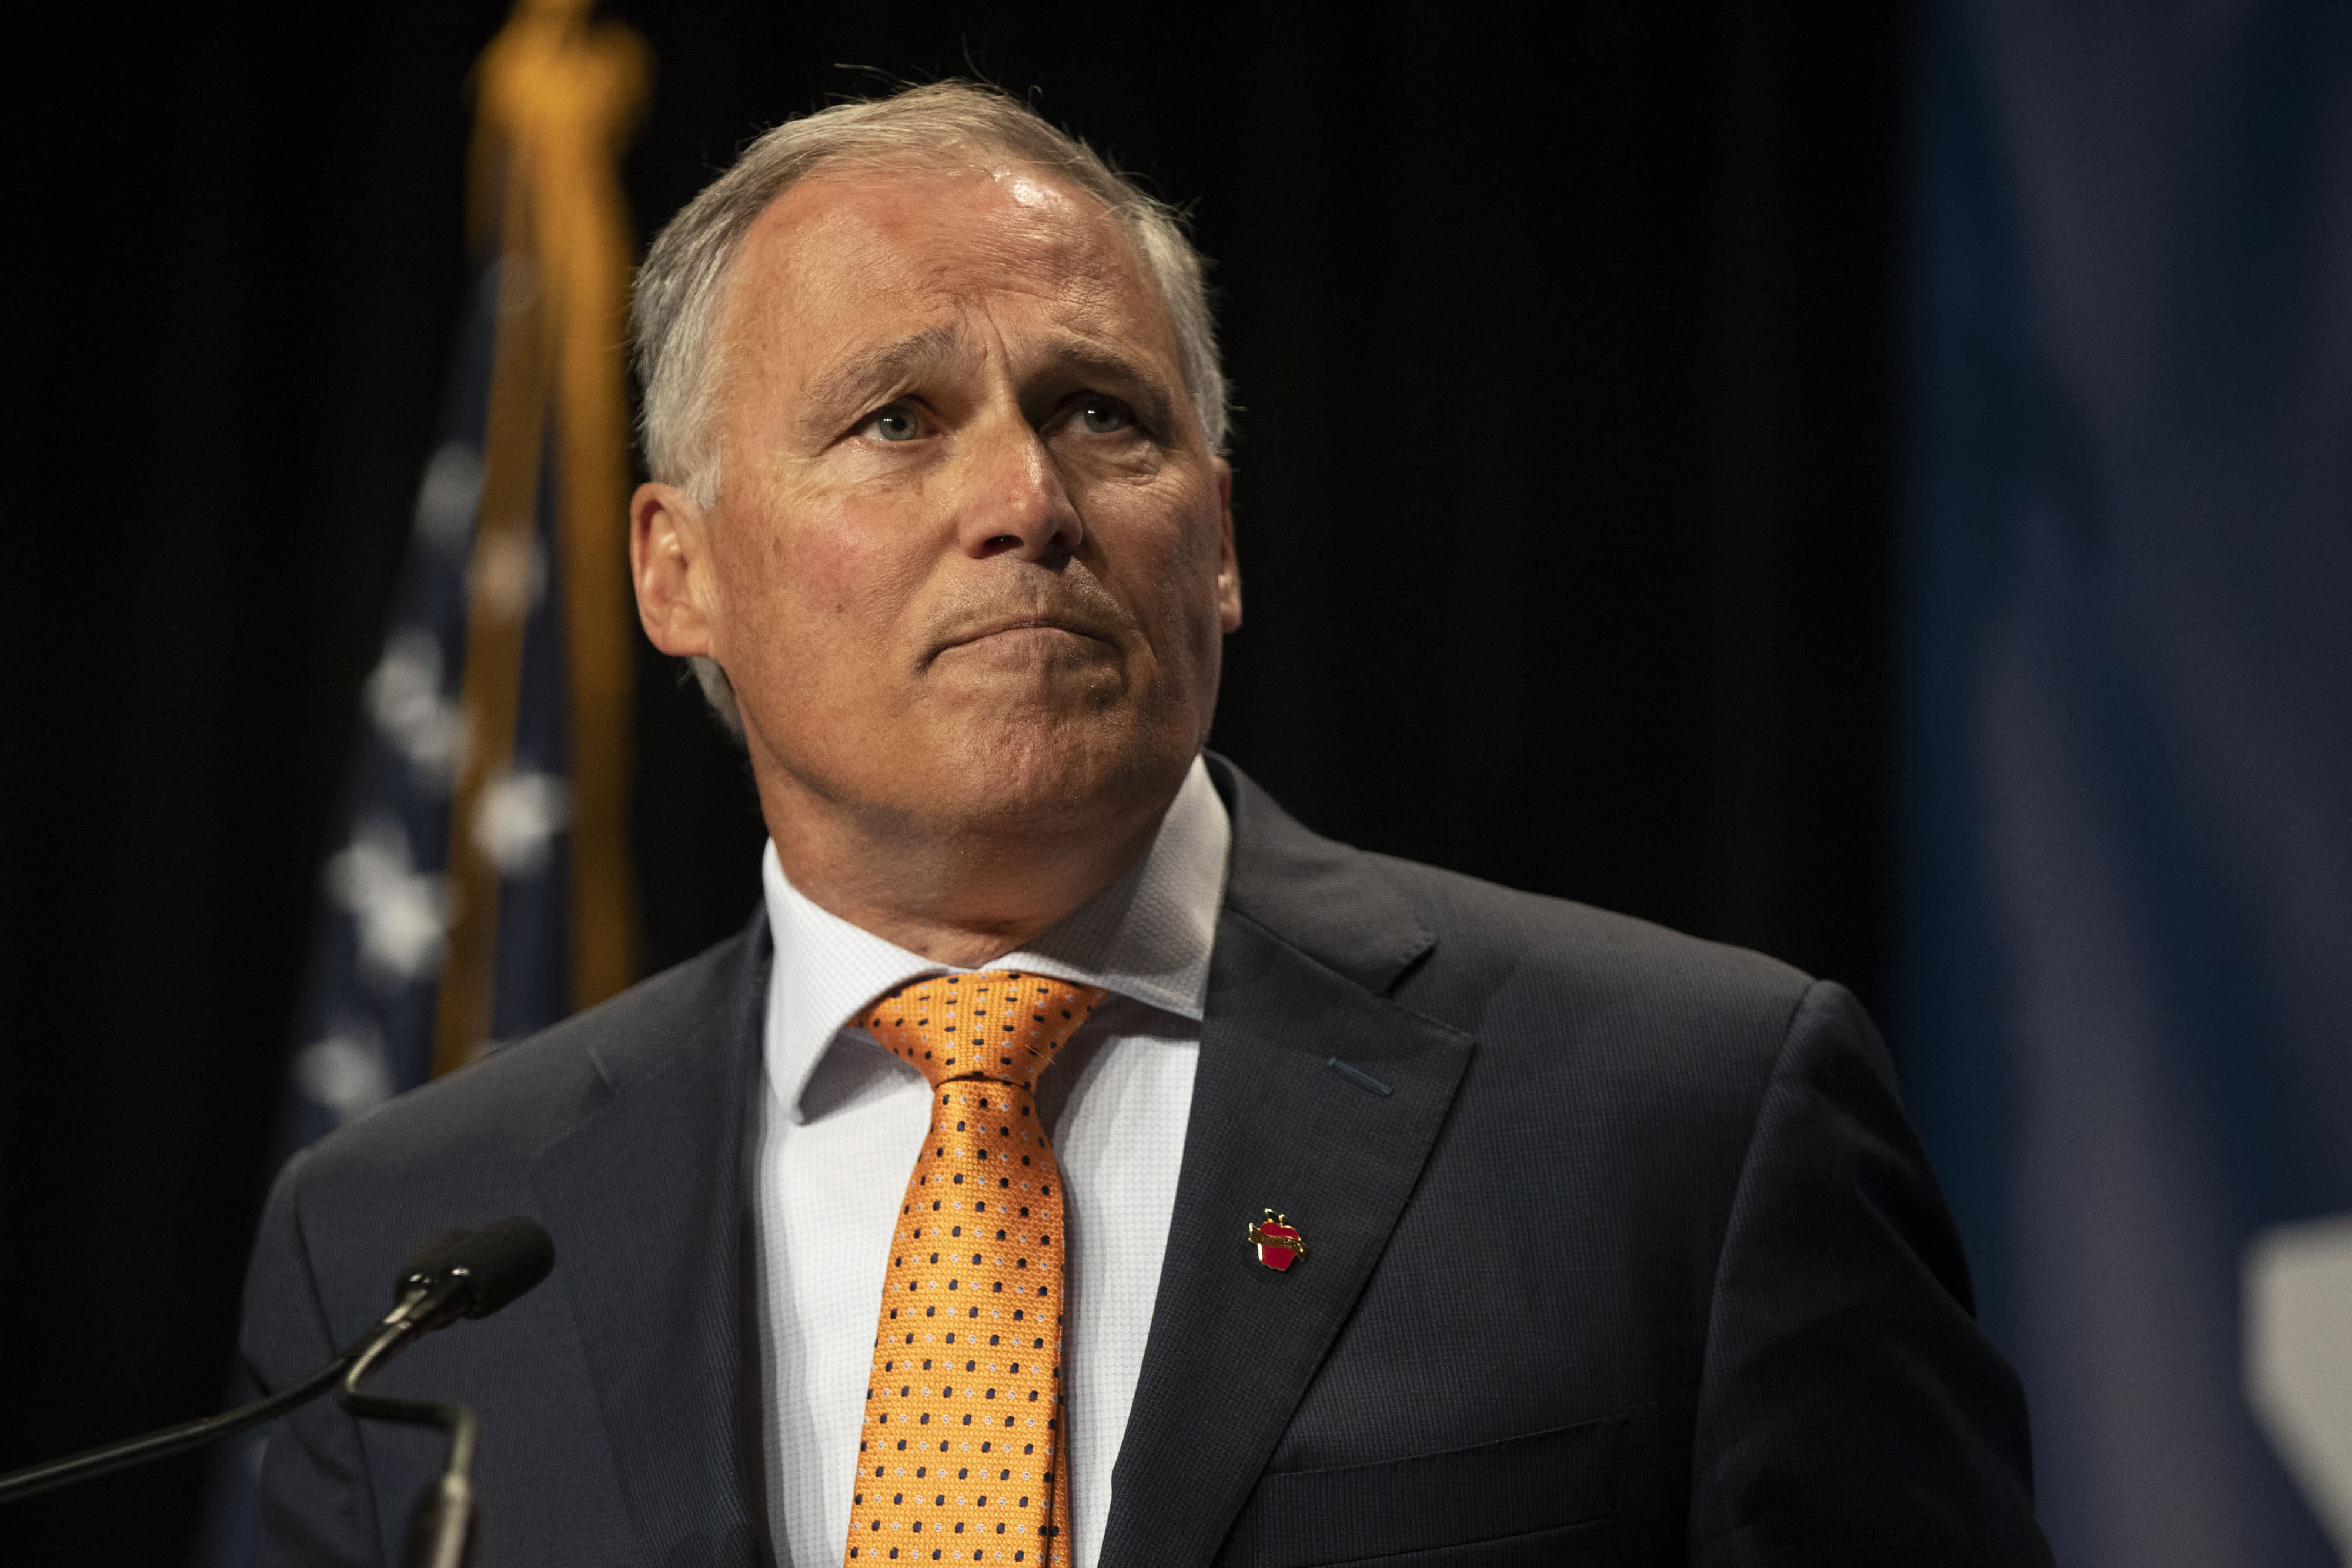 Jay Inslee running for third term as Washington governor after leaving 2020 White House race